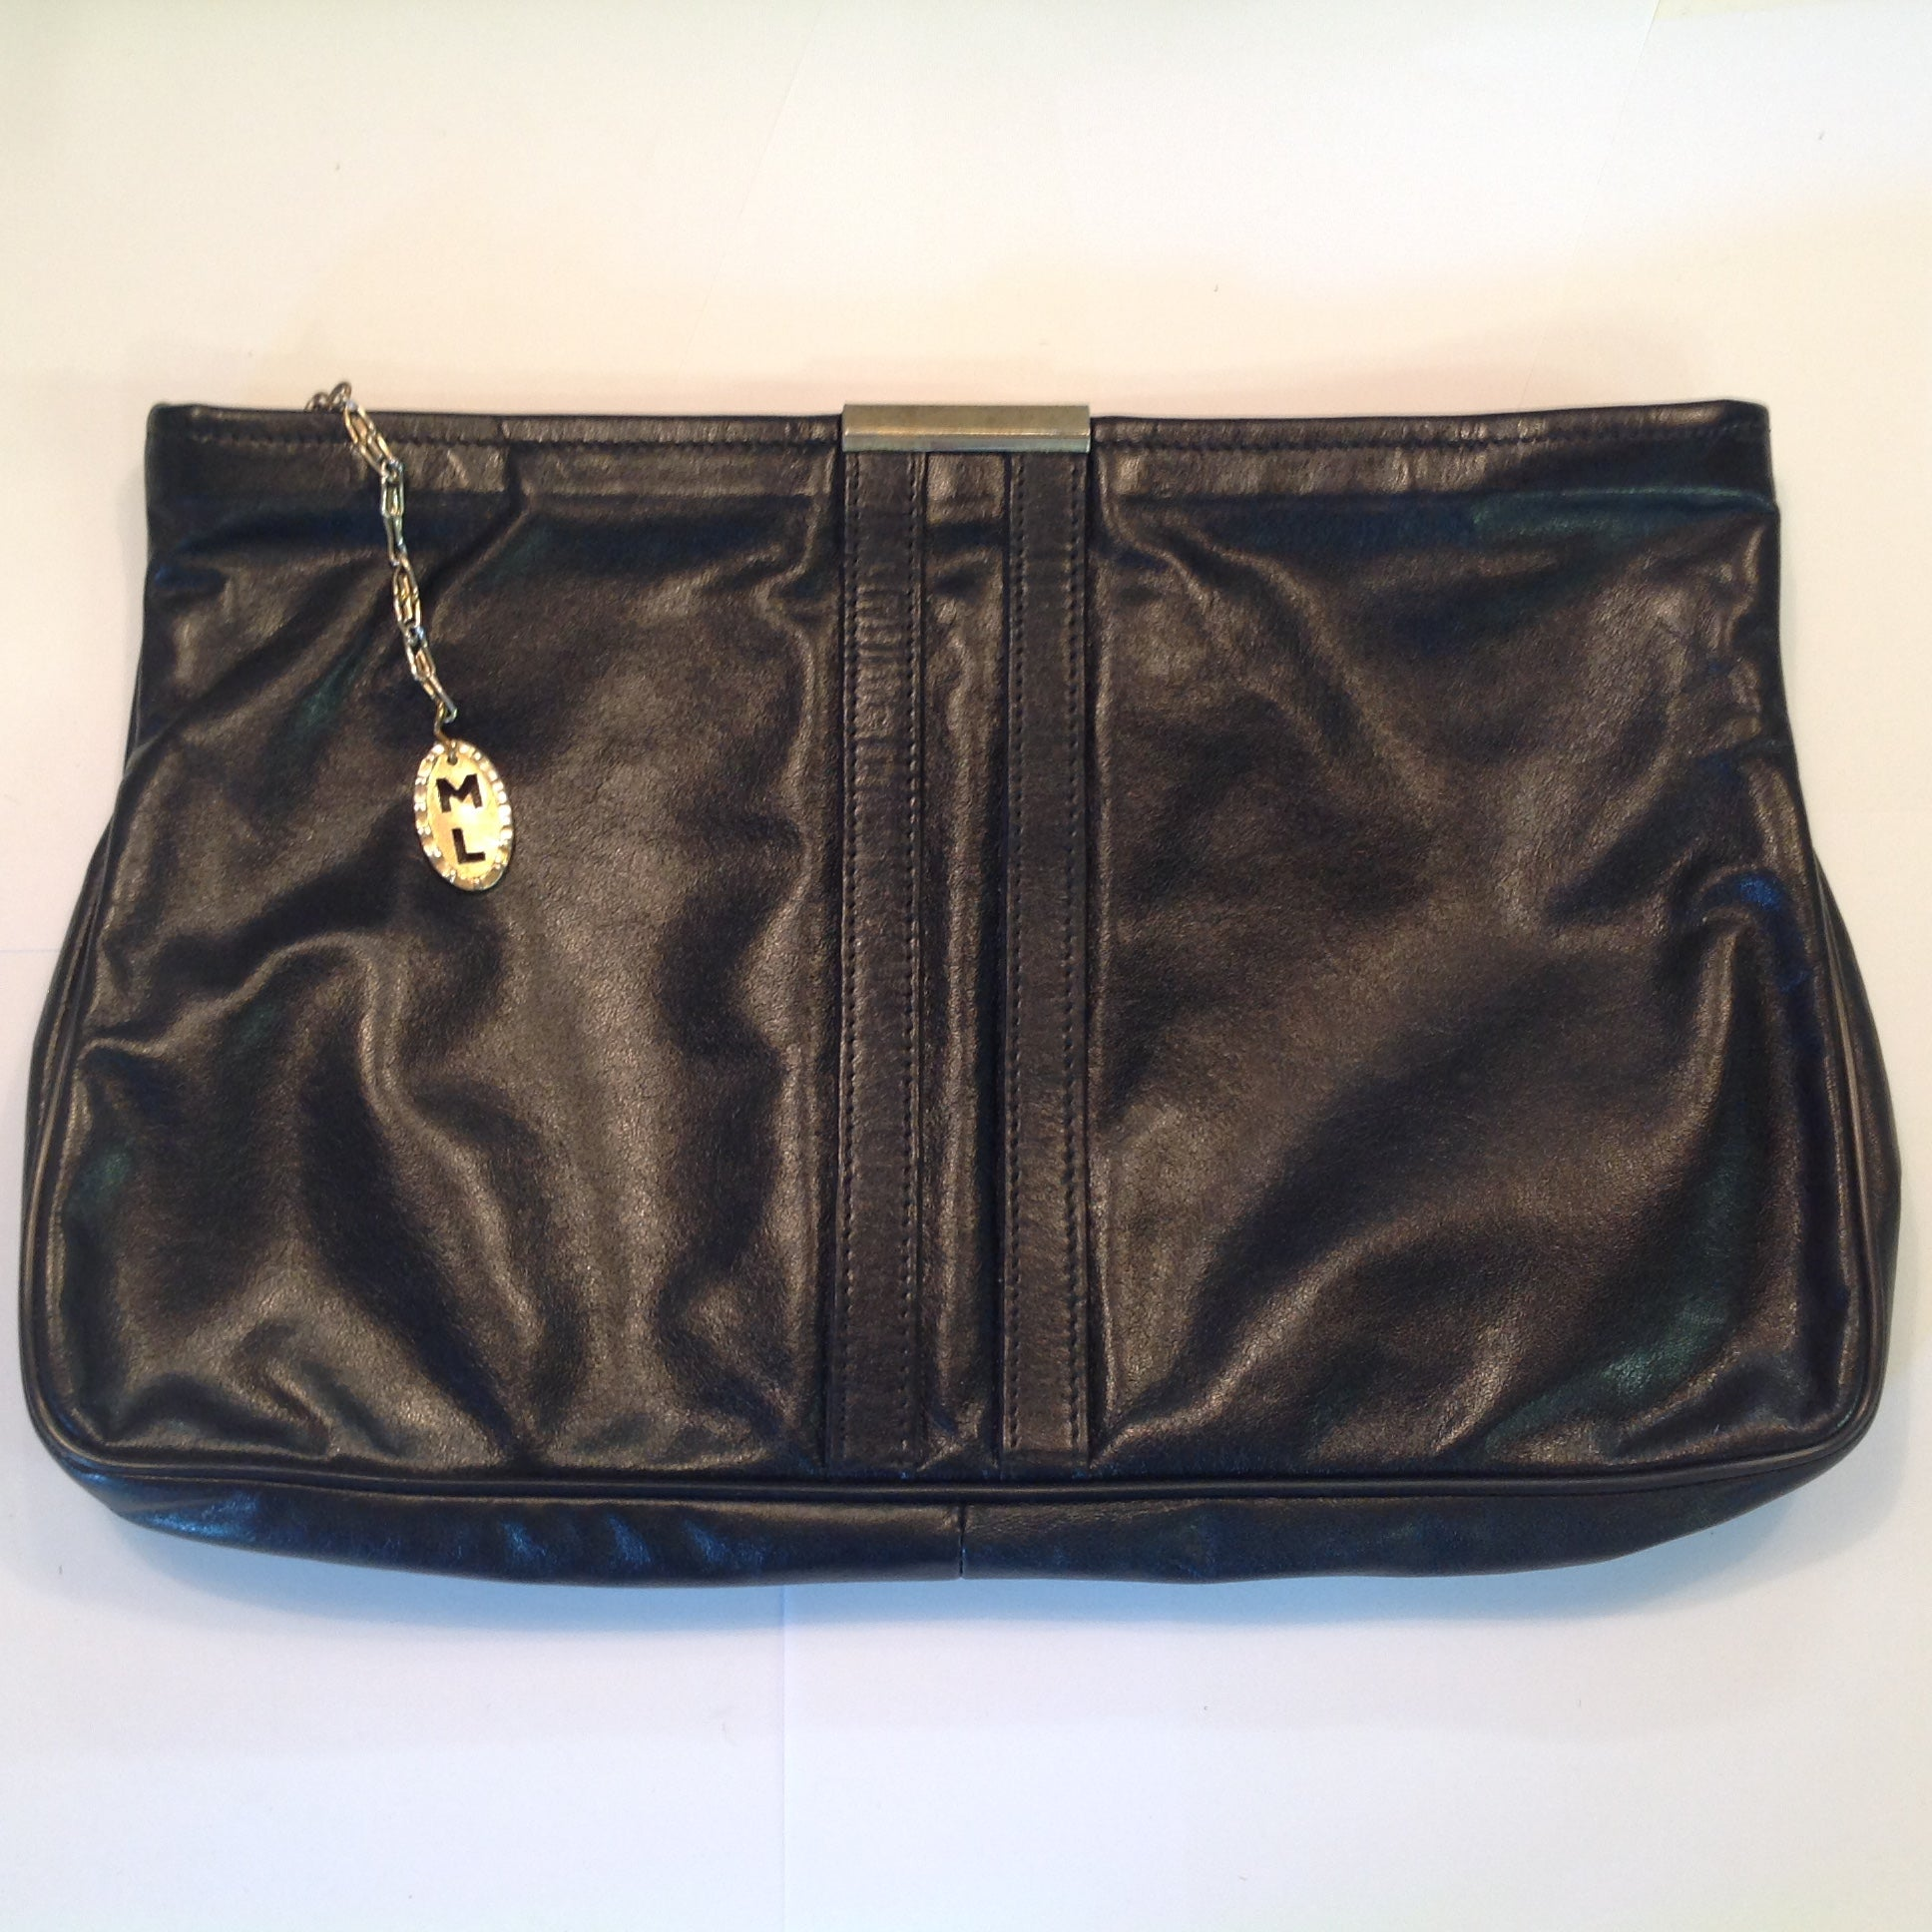 Vintage 1990's Black Vinyl Clutch Purse Goldtone Clasp ML Tag